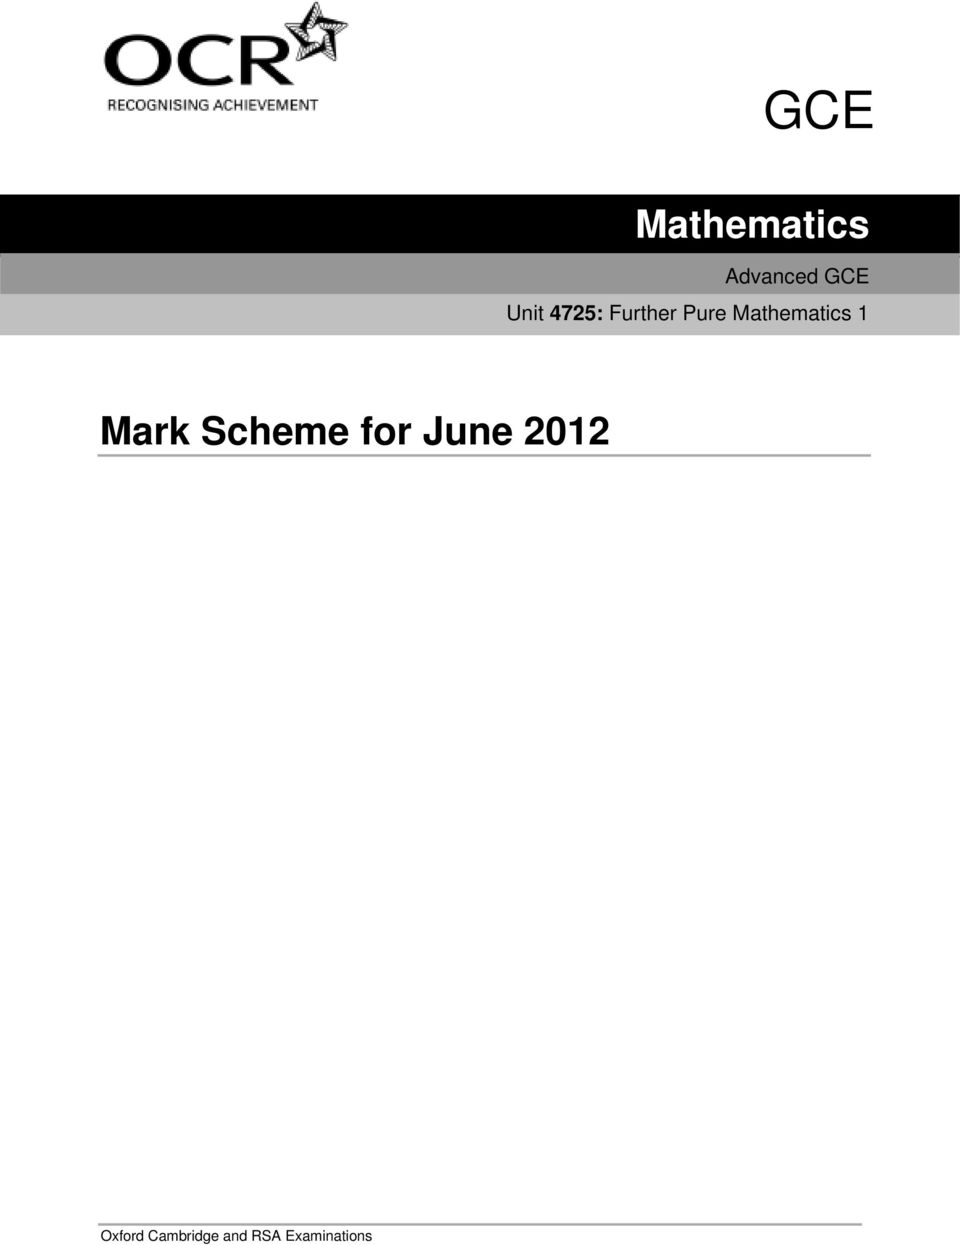 Mathematics 1 Mark Scheme for